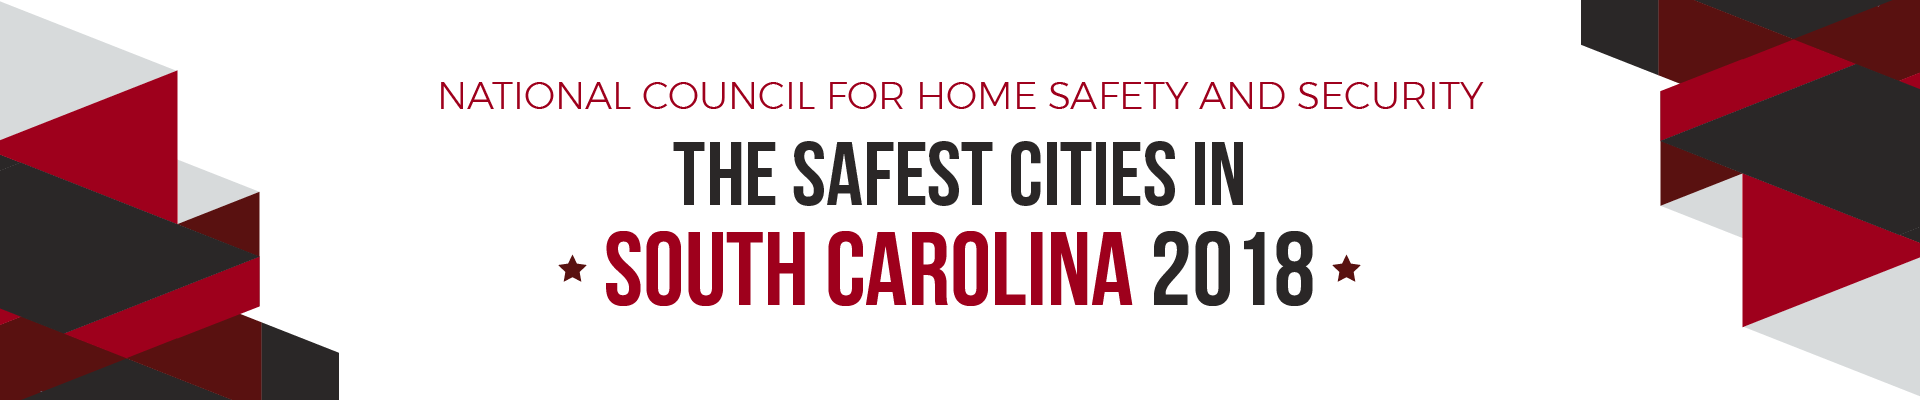 safe cities south carolina 2018